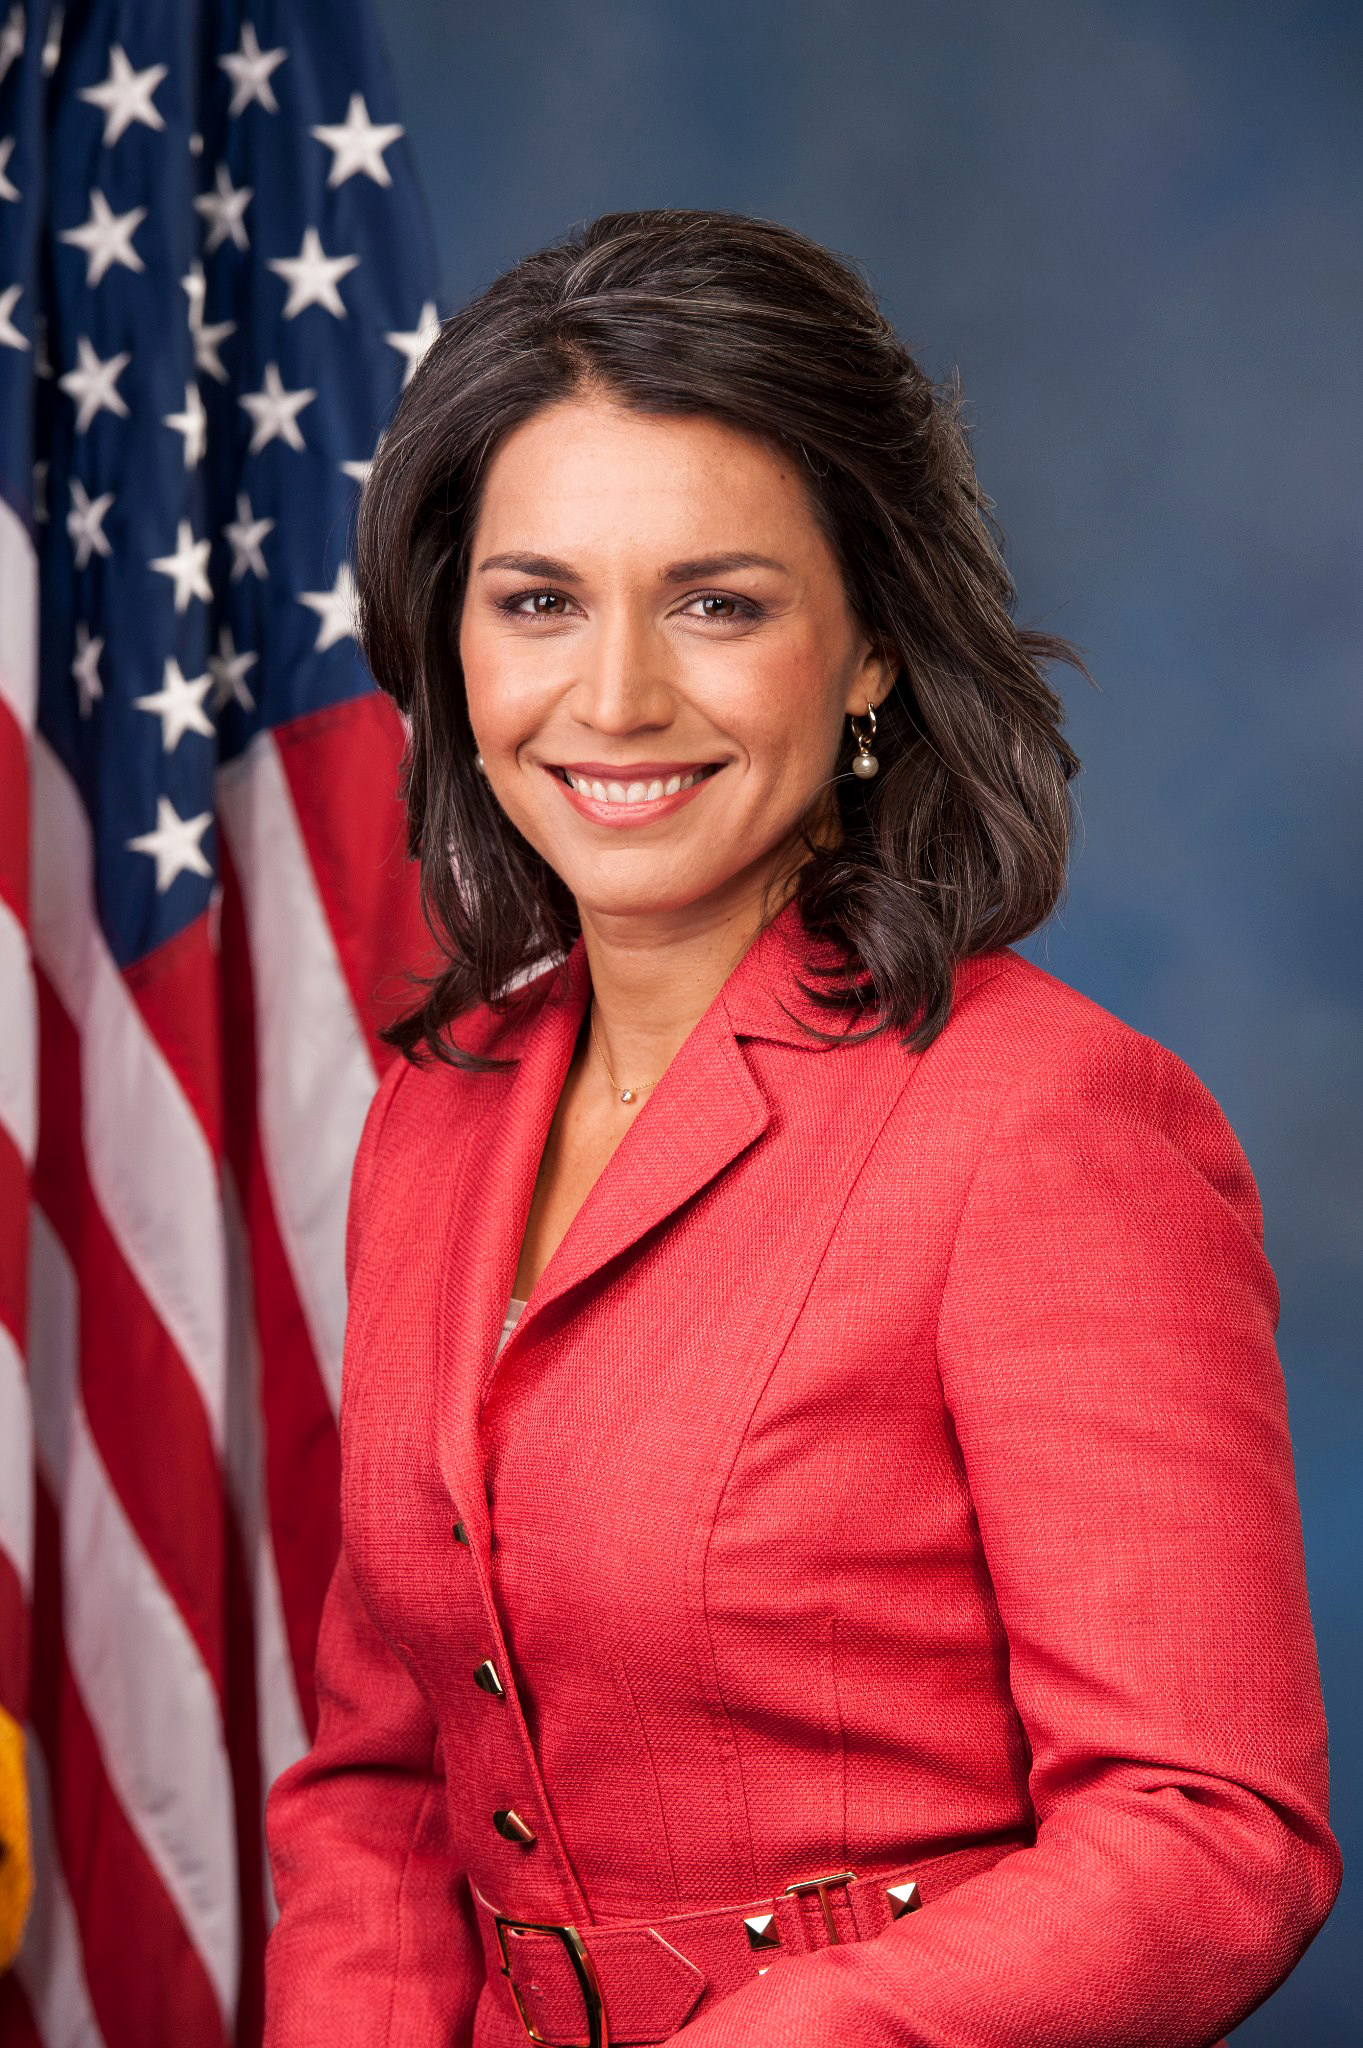 Tulsi Gabbard, official portrait, 113th Congress